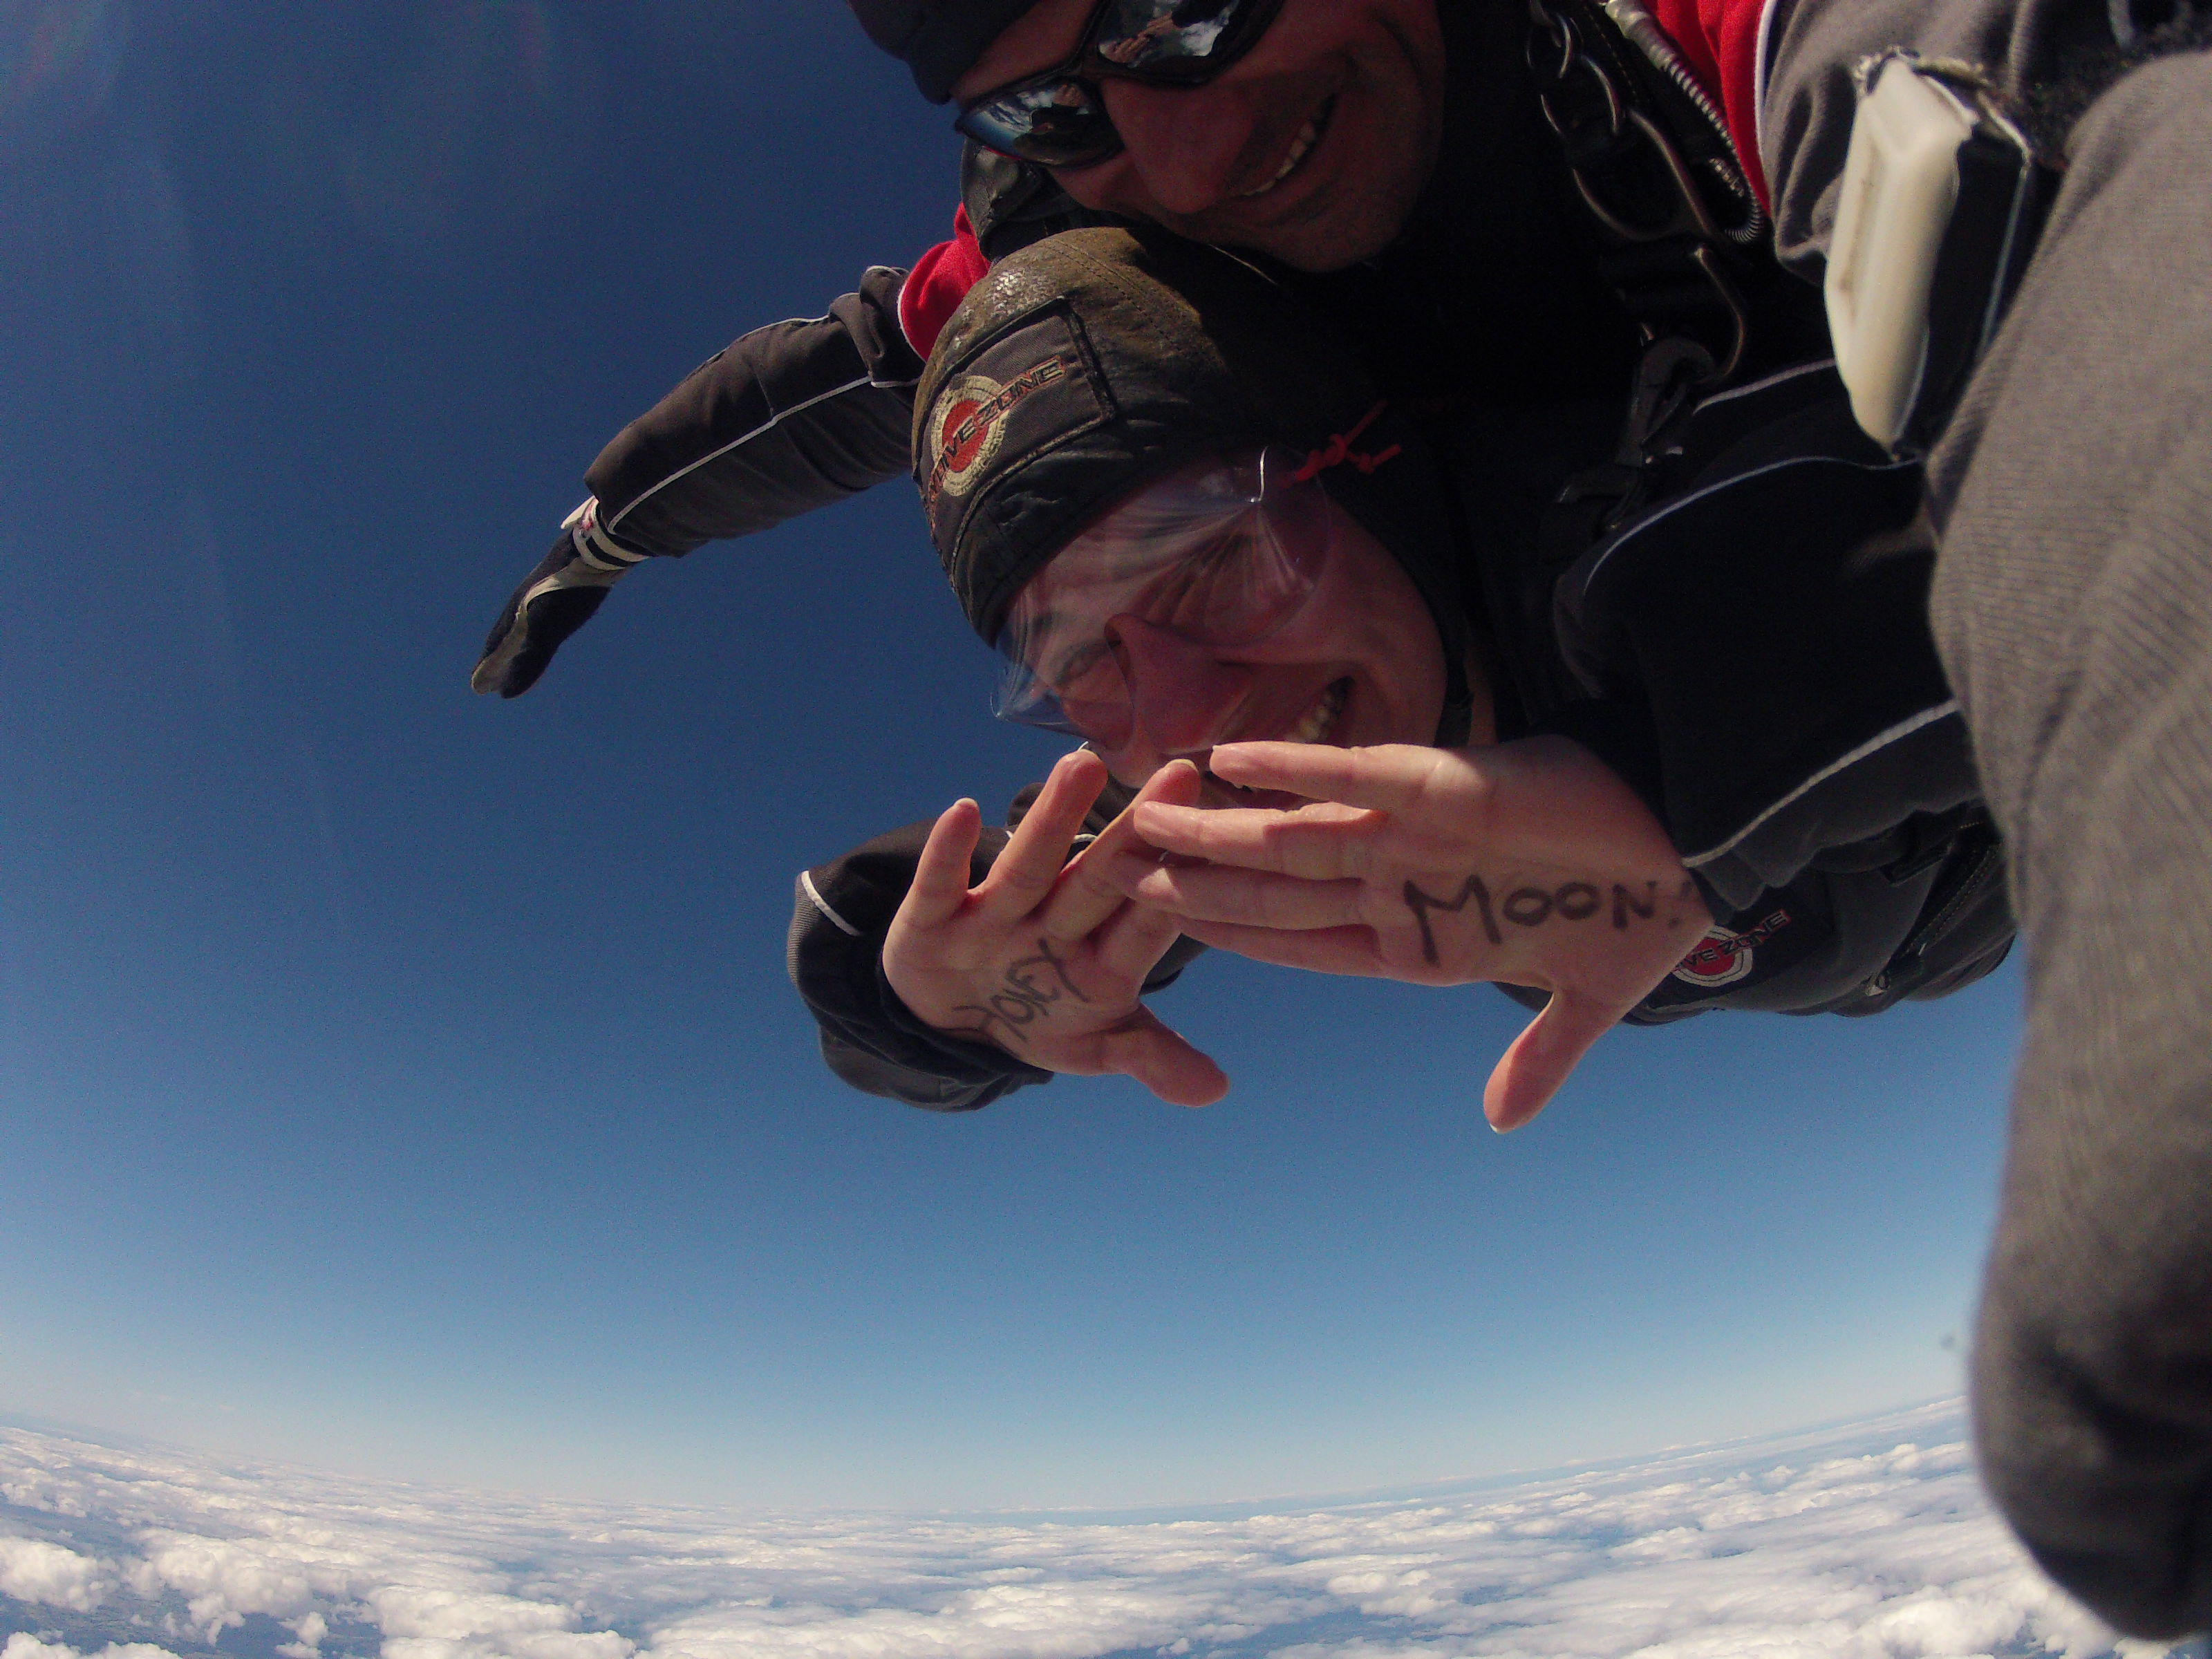 Skydiving: fear made fun